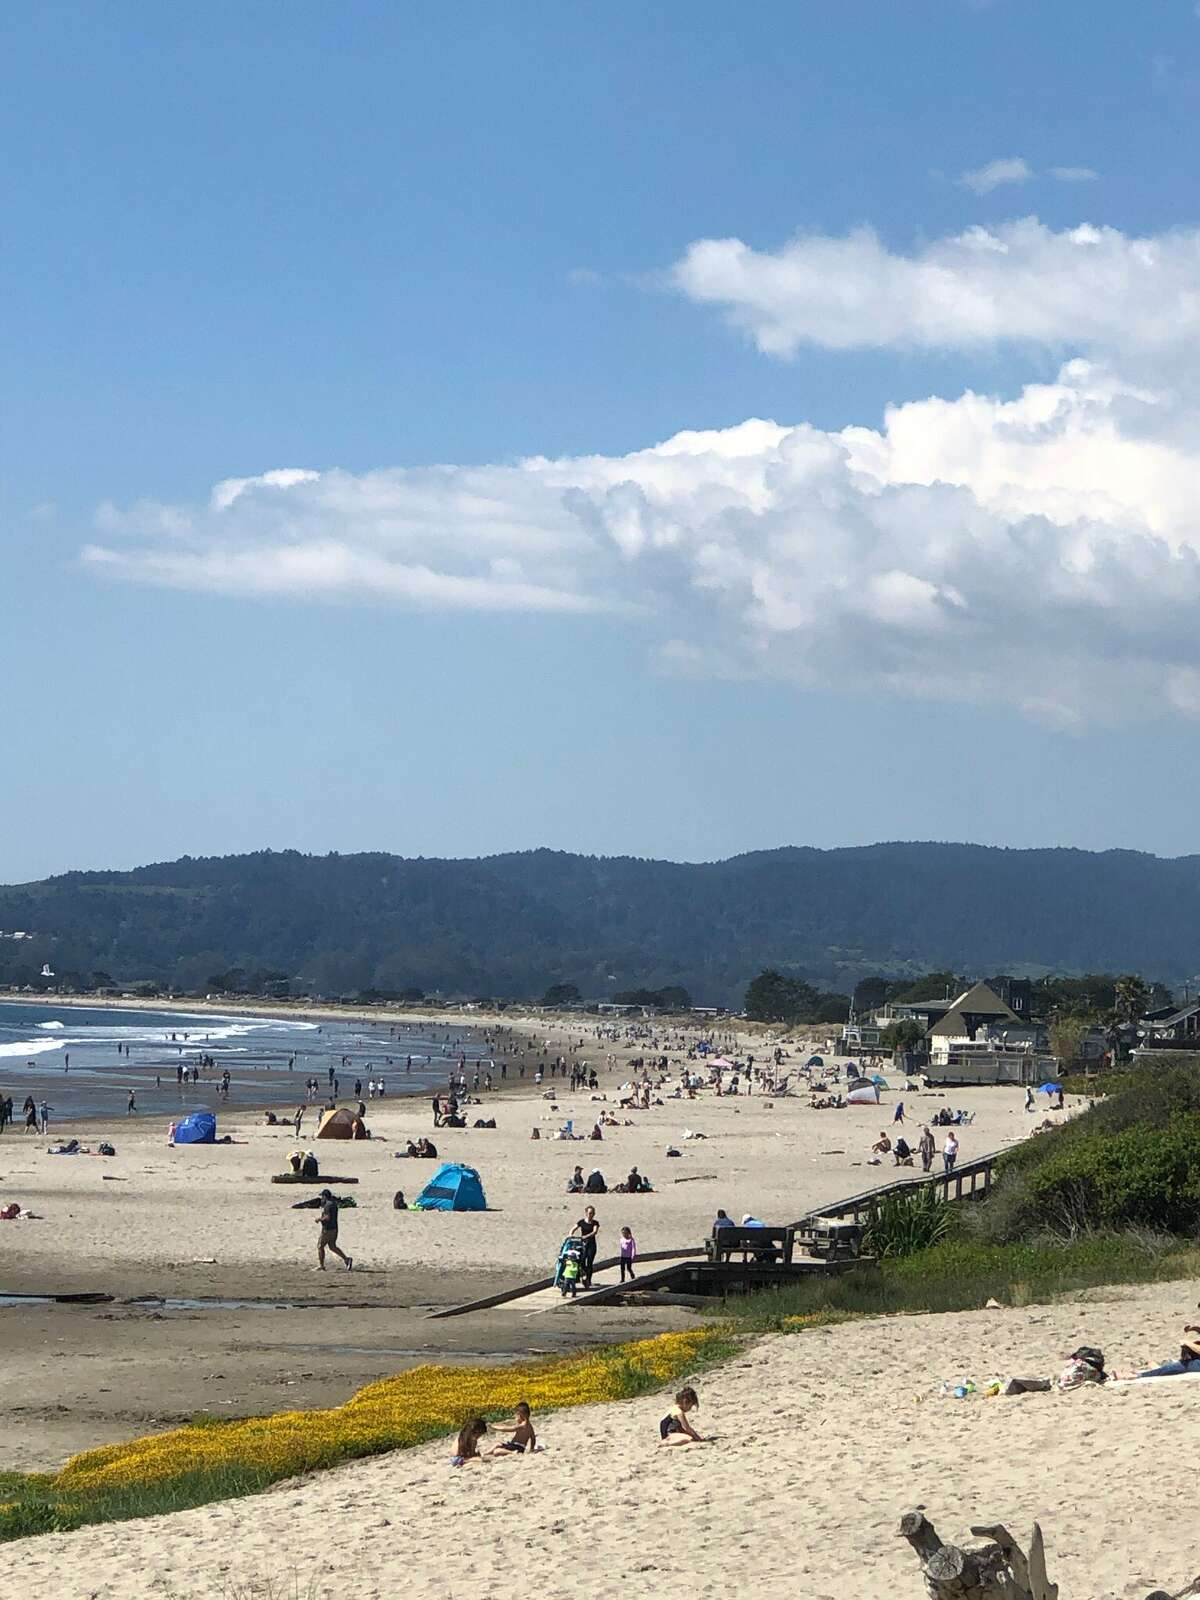 The Marin County Sheriff asked people to stay home and shelter in place after hoards went to beaches and parks on March 21, 2020, prompting road closures.